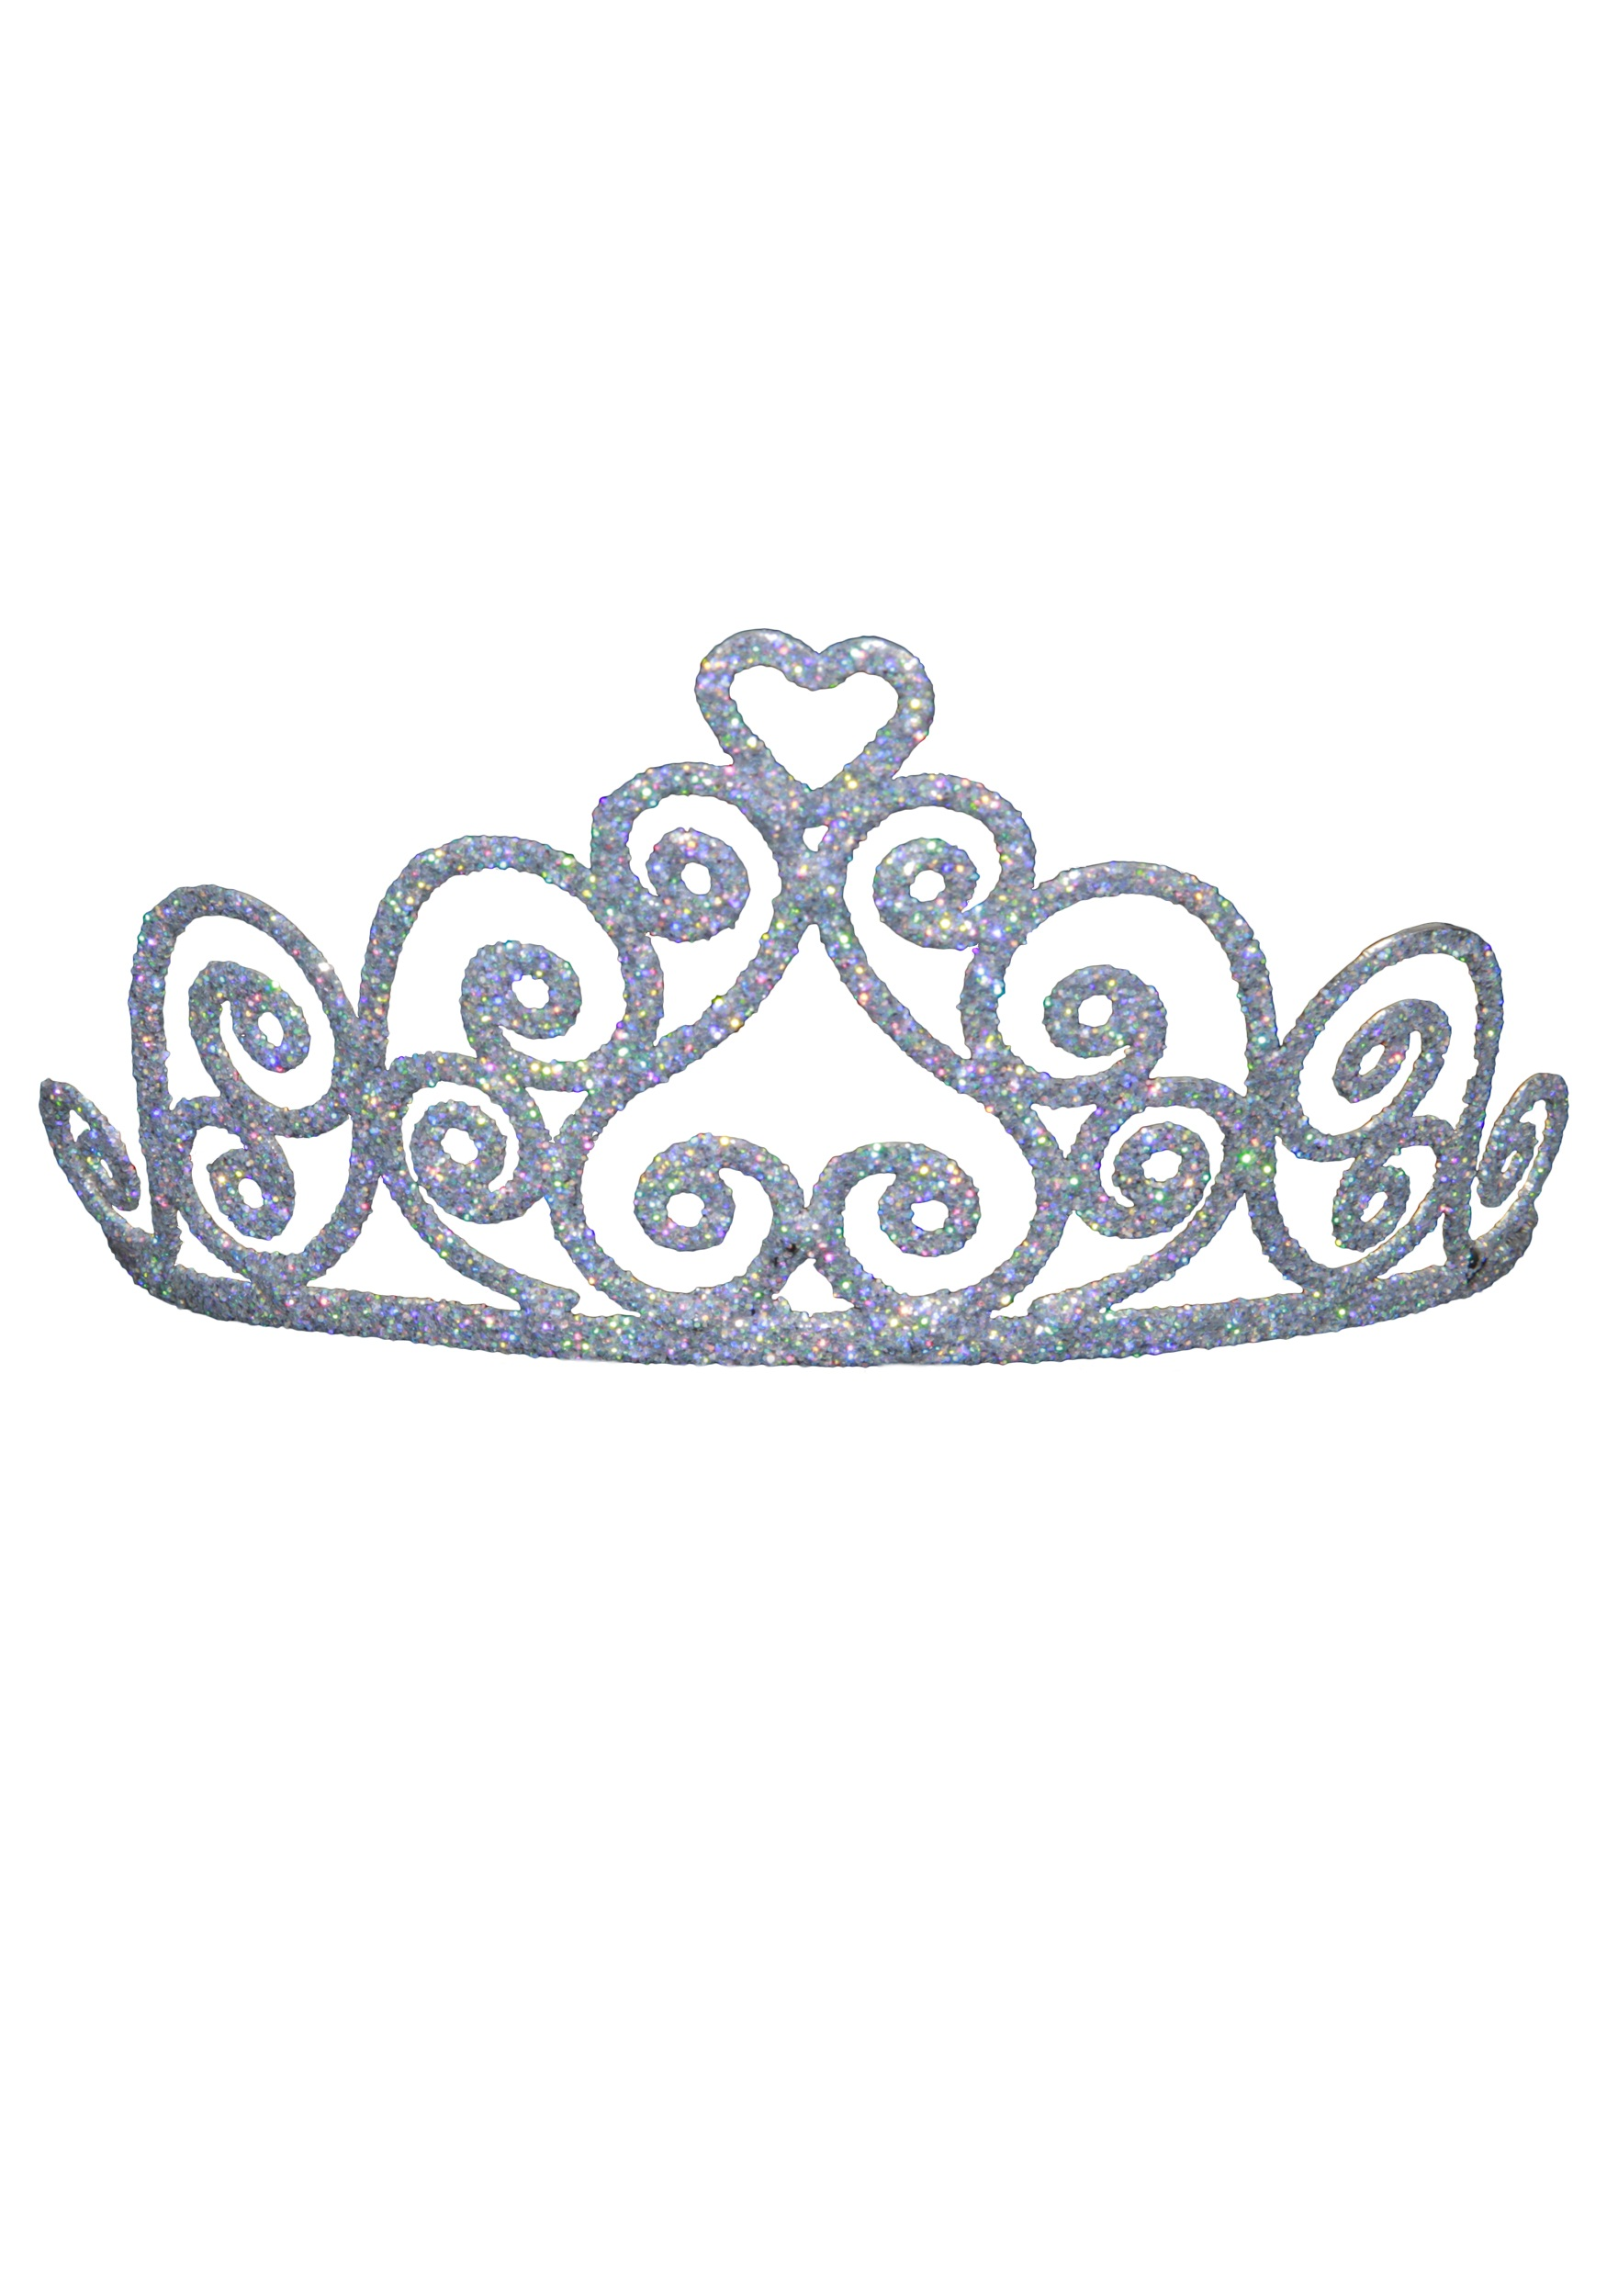 Best Tiara Clipart #2990 - Clipartion.com